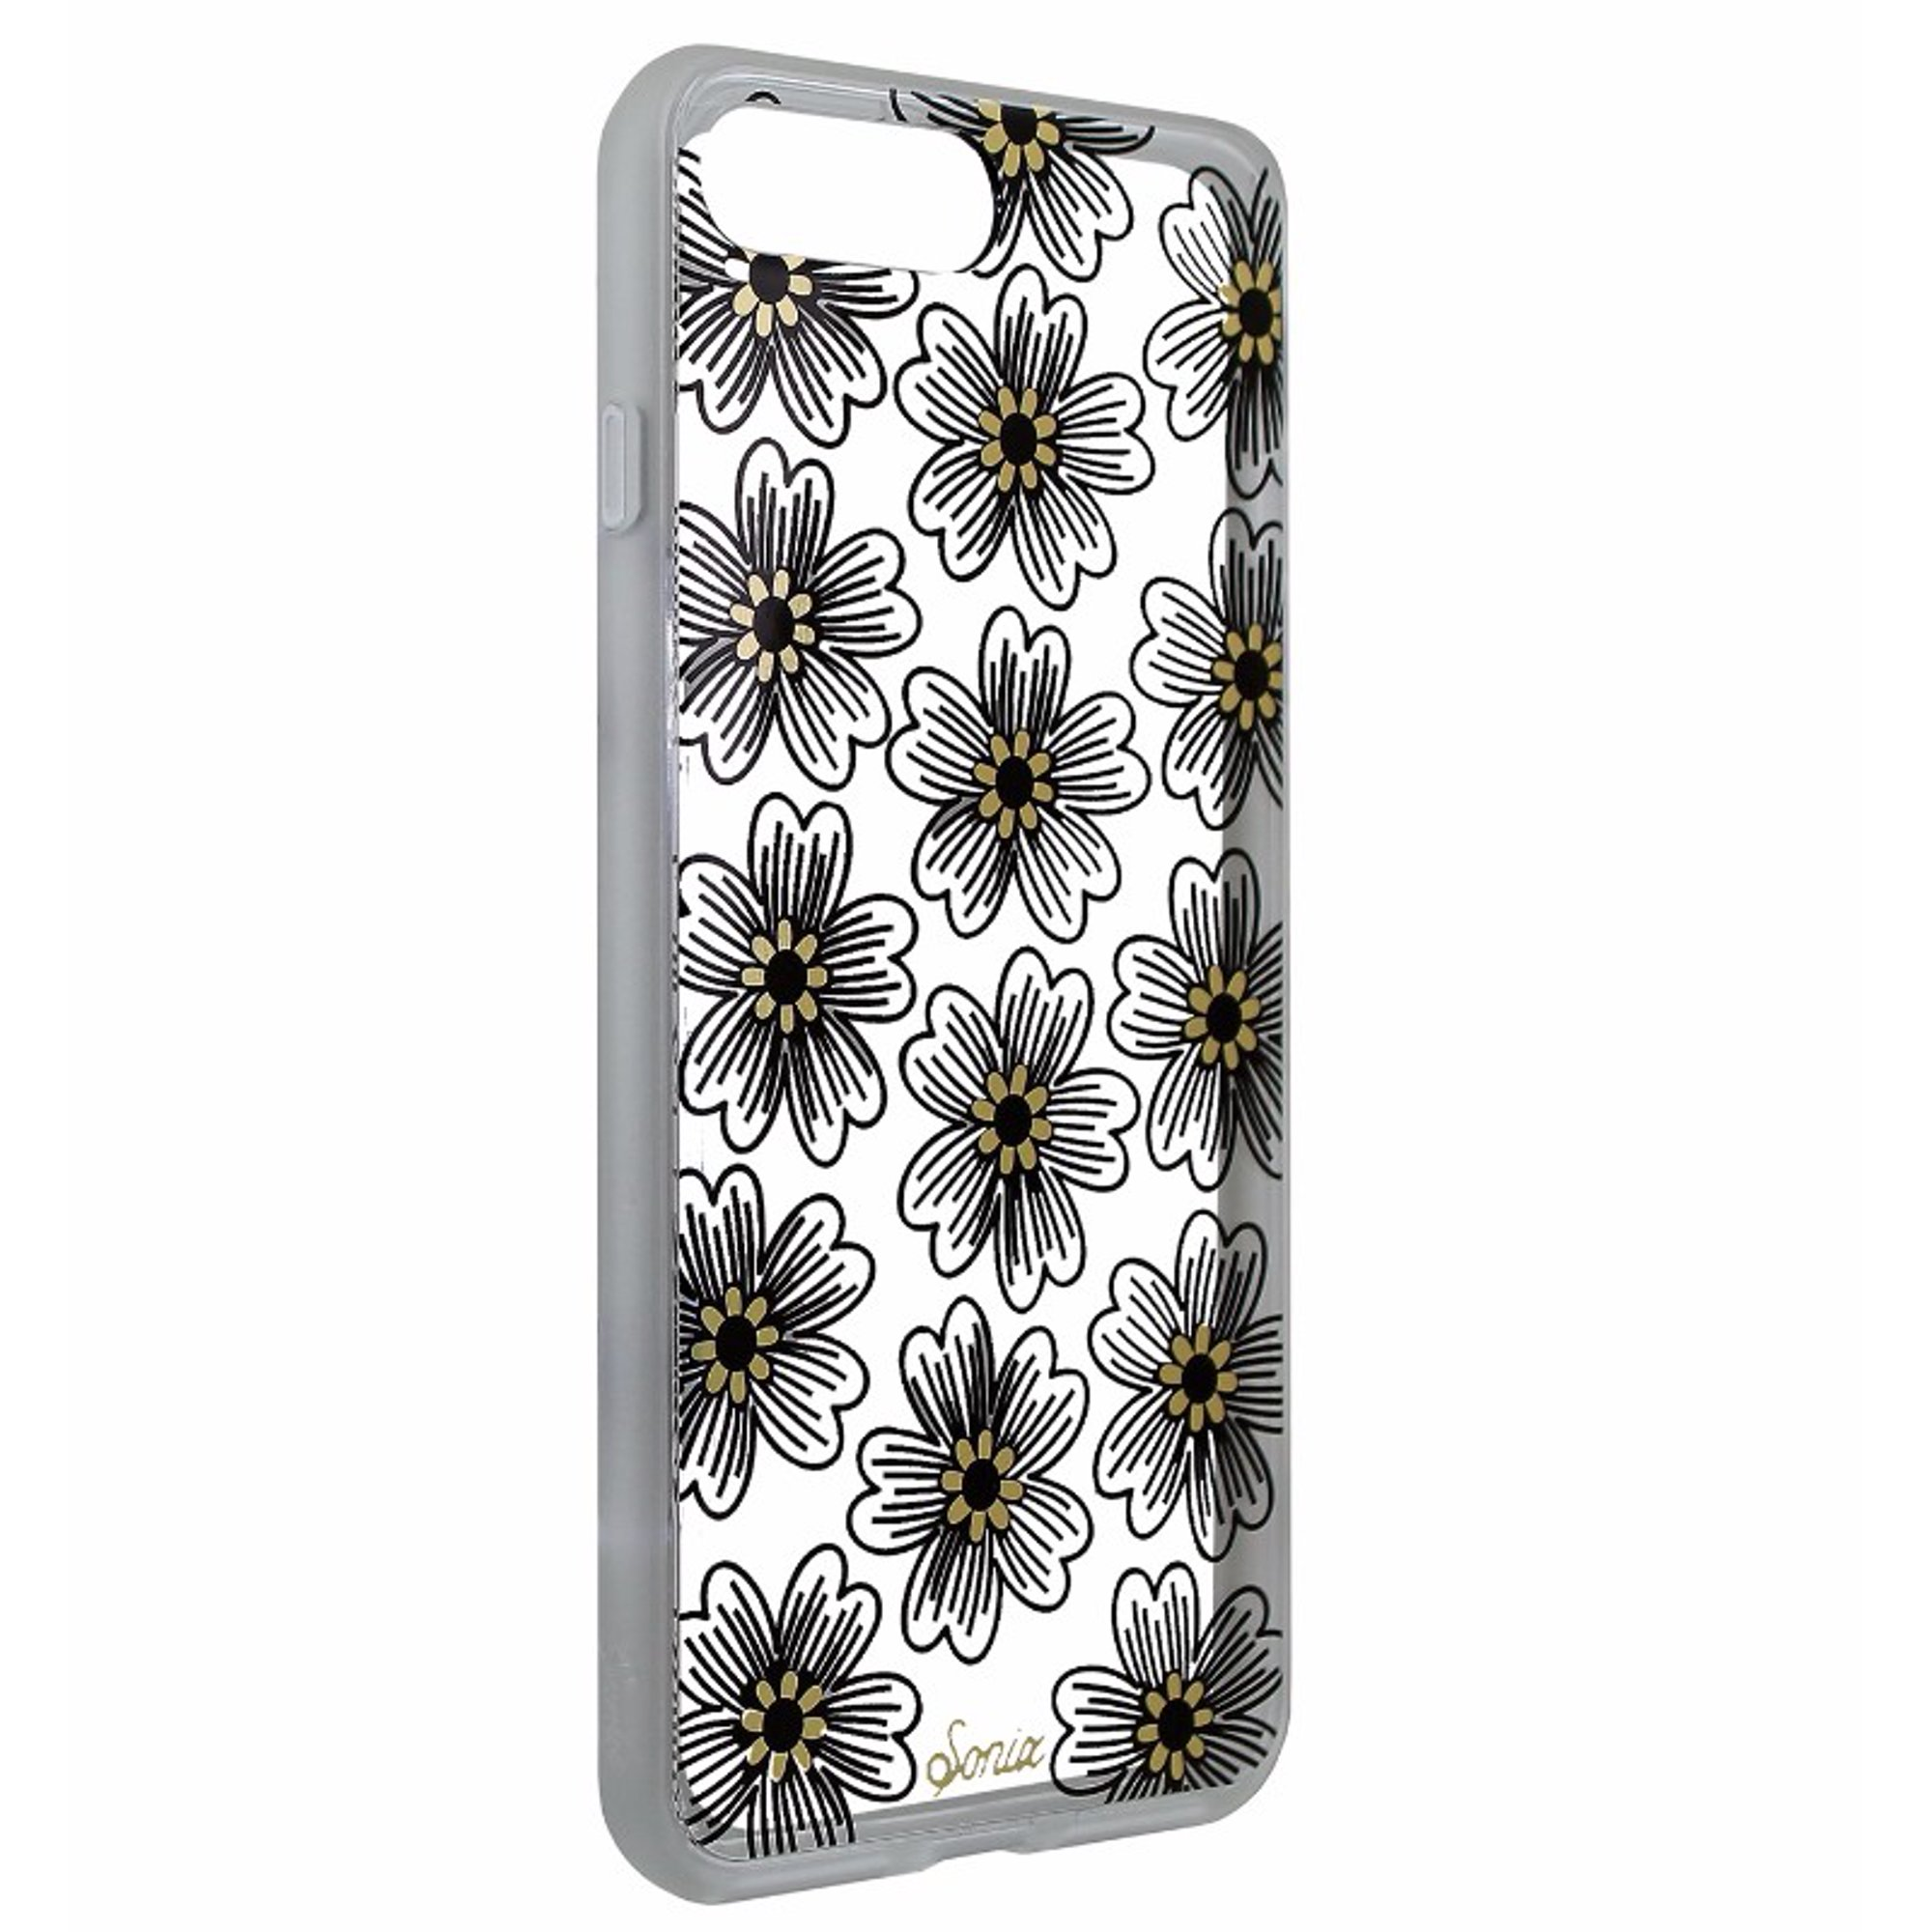 the latest 32b1b ed3b4 Sonix Clear Coat Series Case Cover for iPhone 7 Plus/8 Plus Clear/Black  Flowers